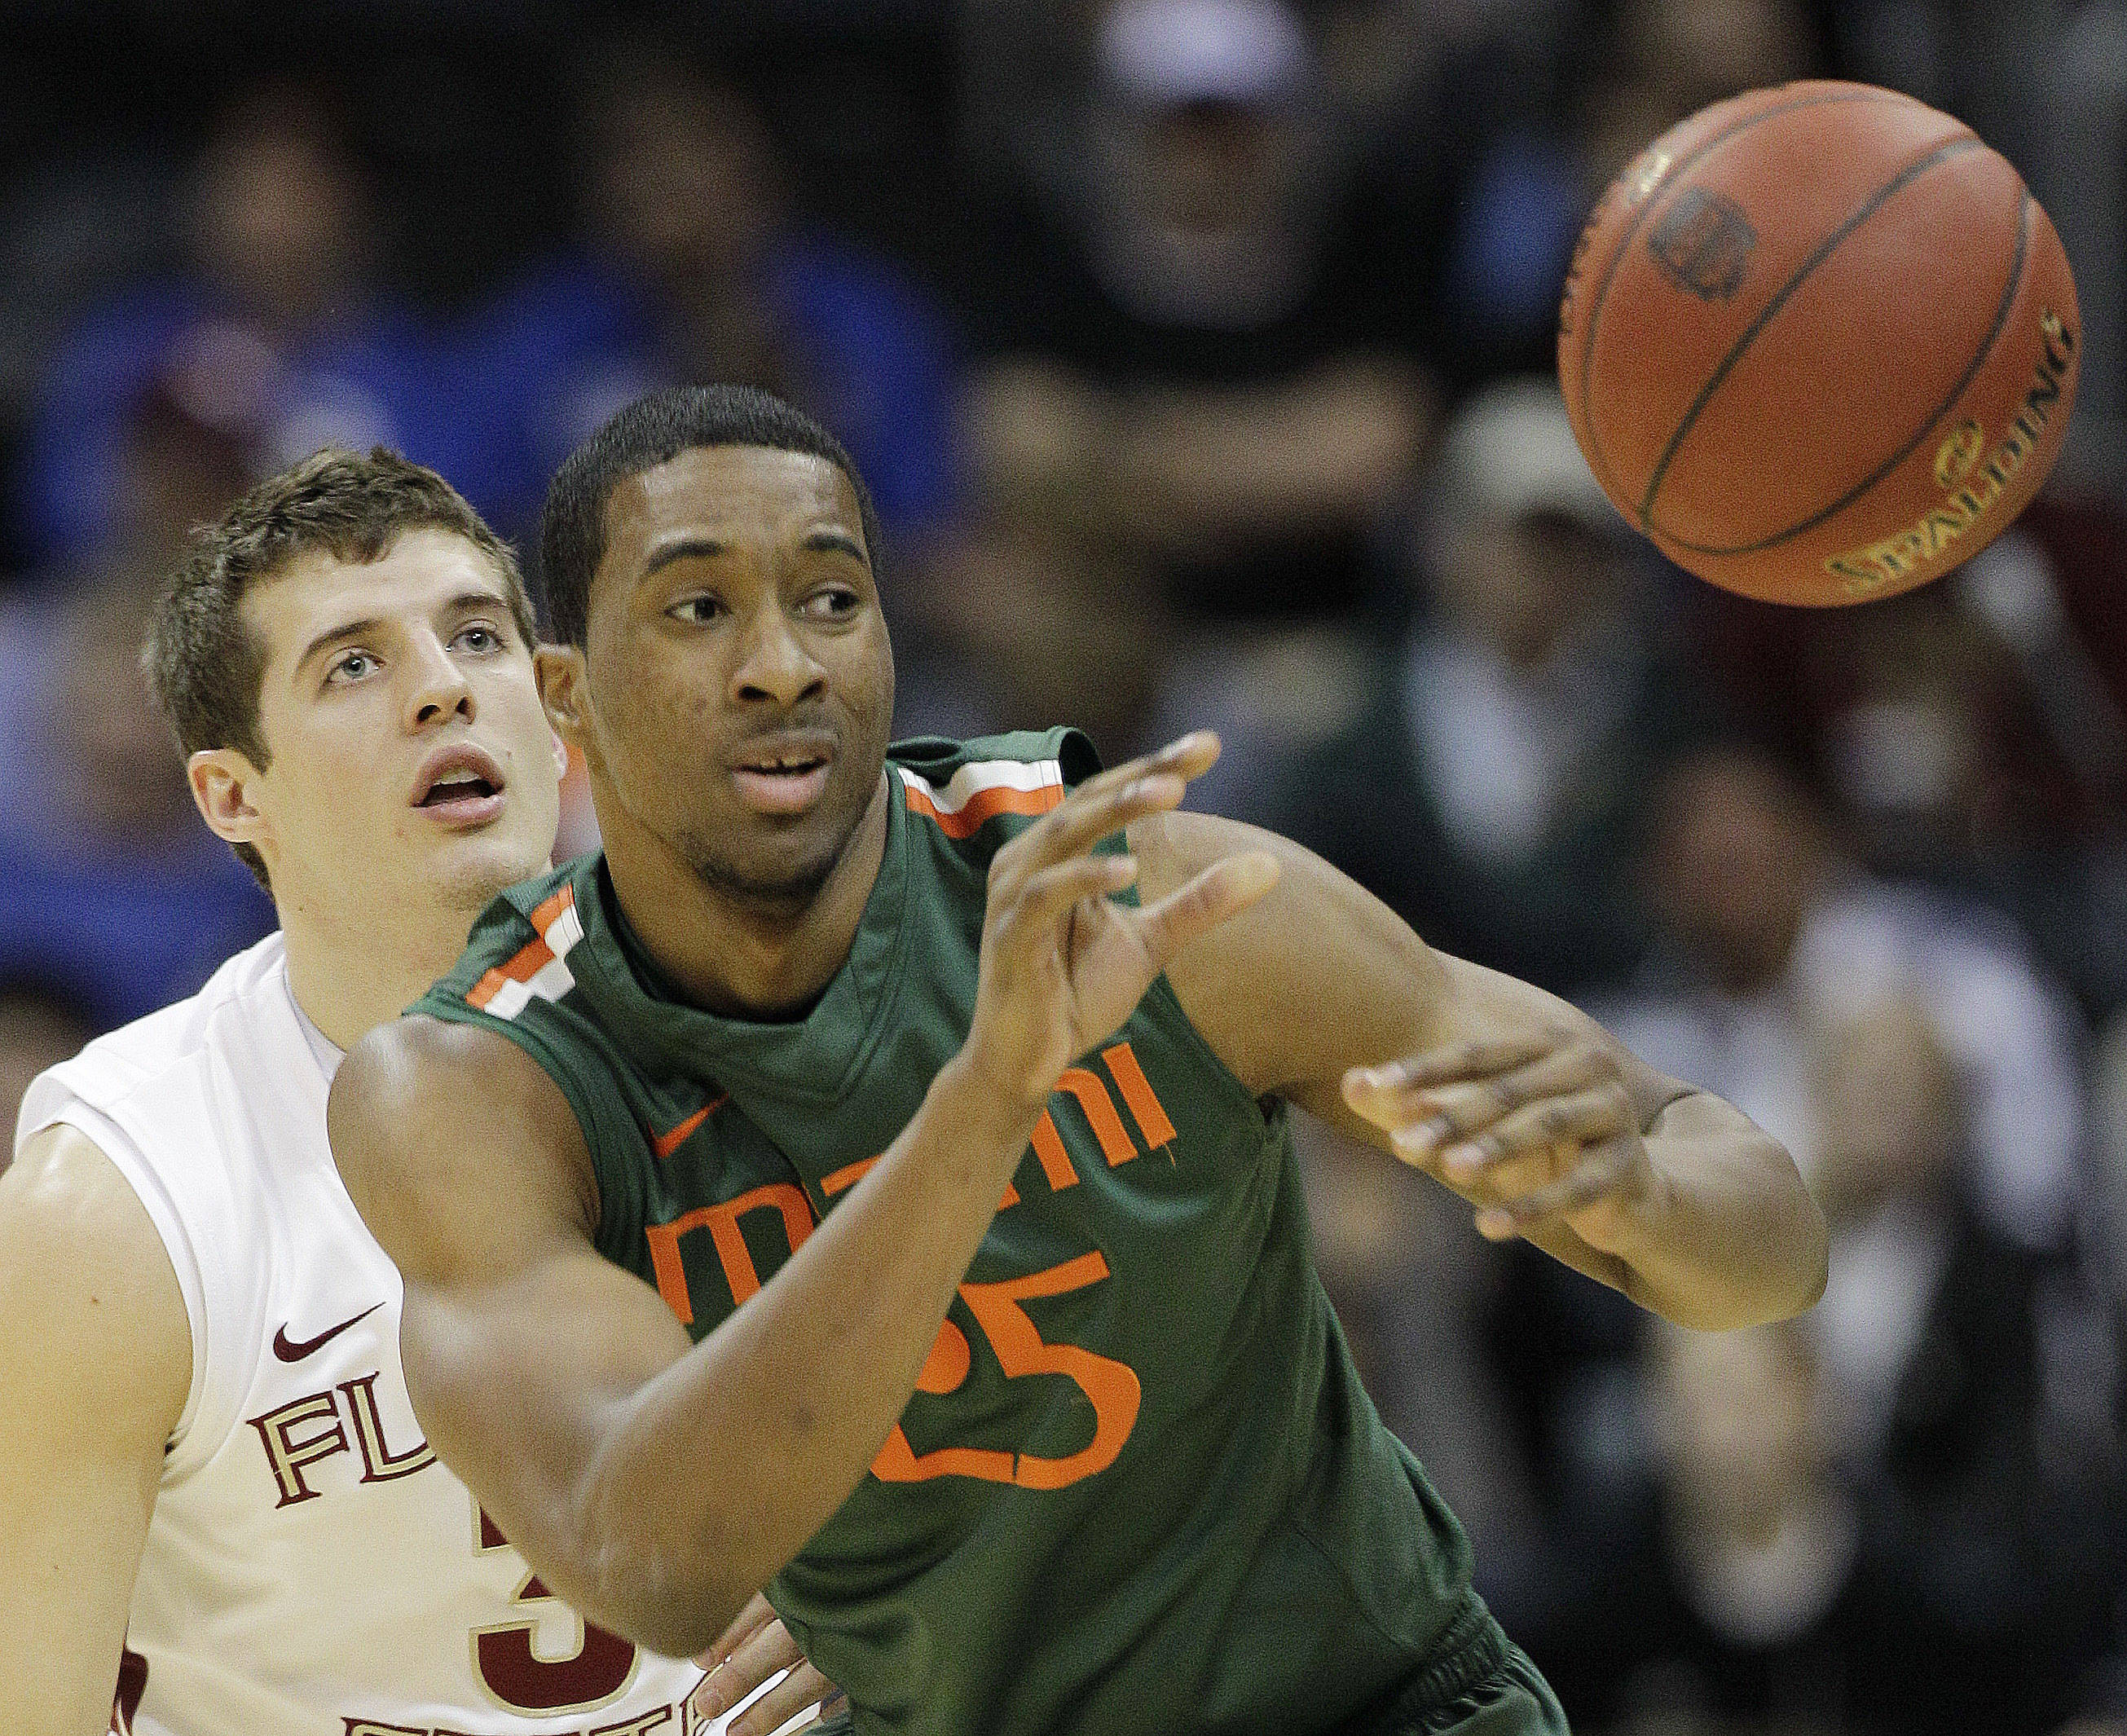 Miami guard Garrius Adams (25) passes the ball ahead of Florida State guard Luke Loucks (3) during the first half of an NCAA college basketball game in the quarterfinals of the Atlantic Coast Conference tournament, Friday, March 9, 2012, in Atlanta. (AP Photo/Chuck Burton)